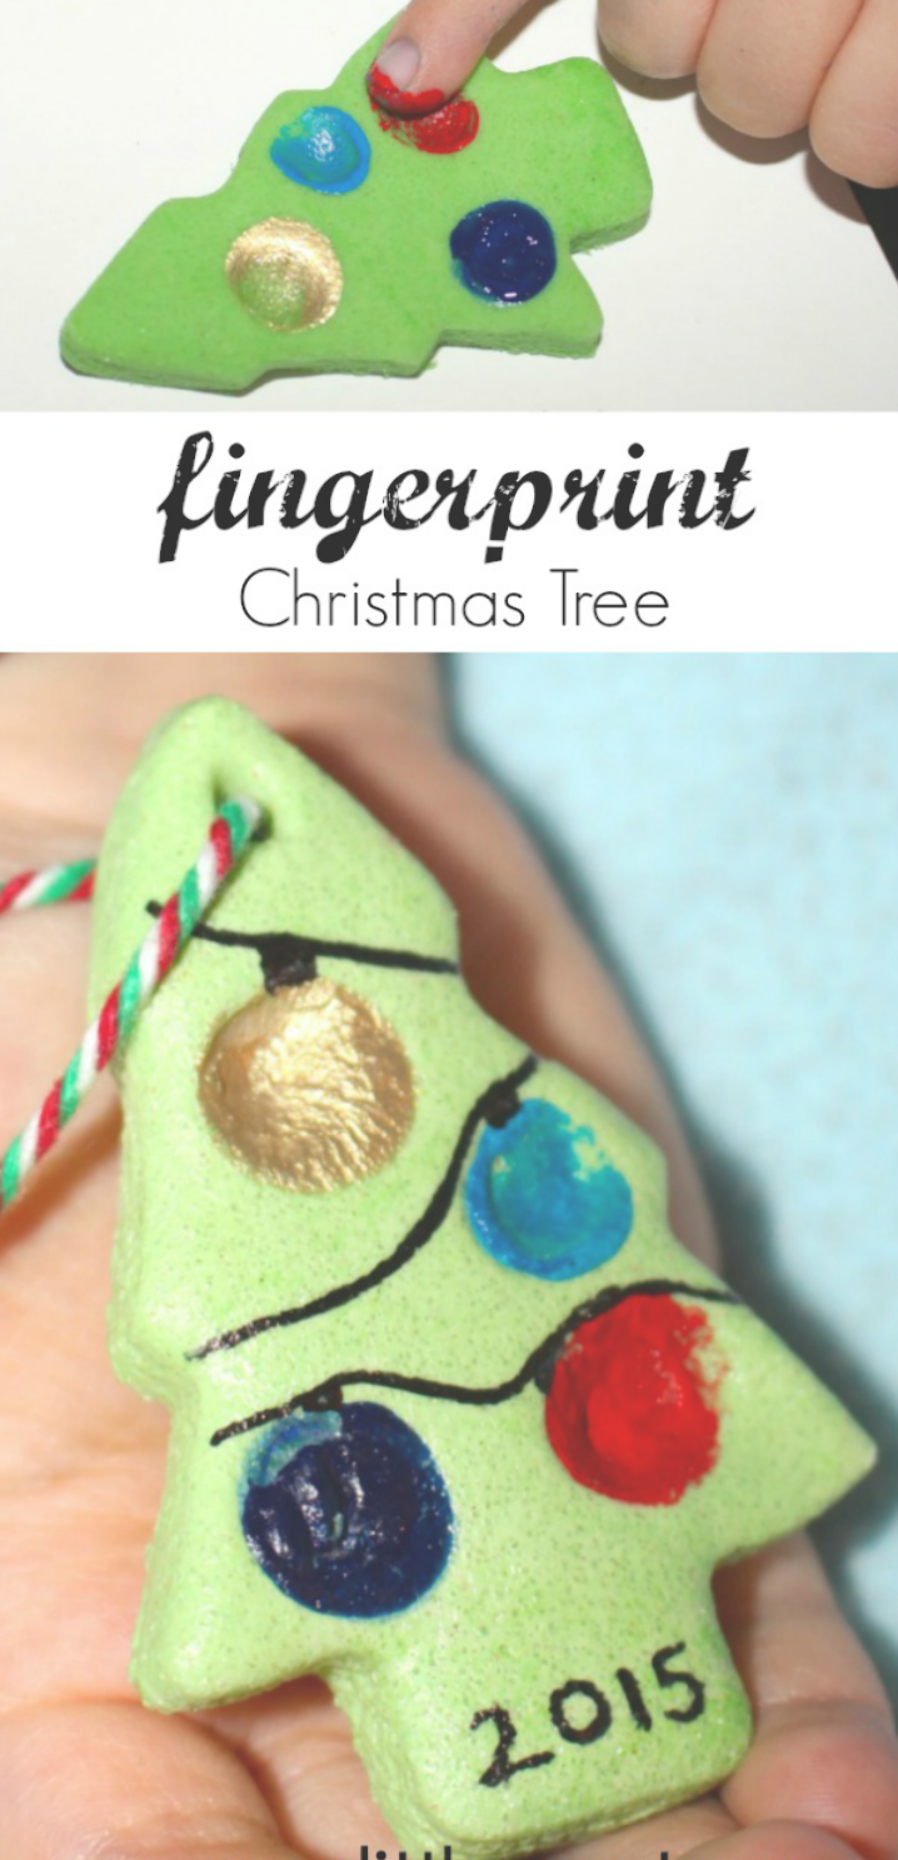 Fingerprint christmas tree crafts for kids. Coloured salt dough ornament recipe. Easy salt dough crafts. Personalized Christmas ornament for toddlers and preschoolers to make. #saltdoughornaments